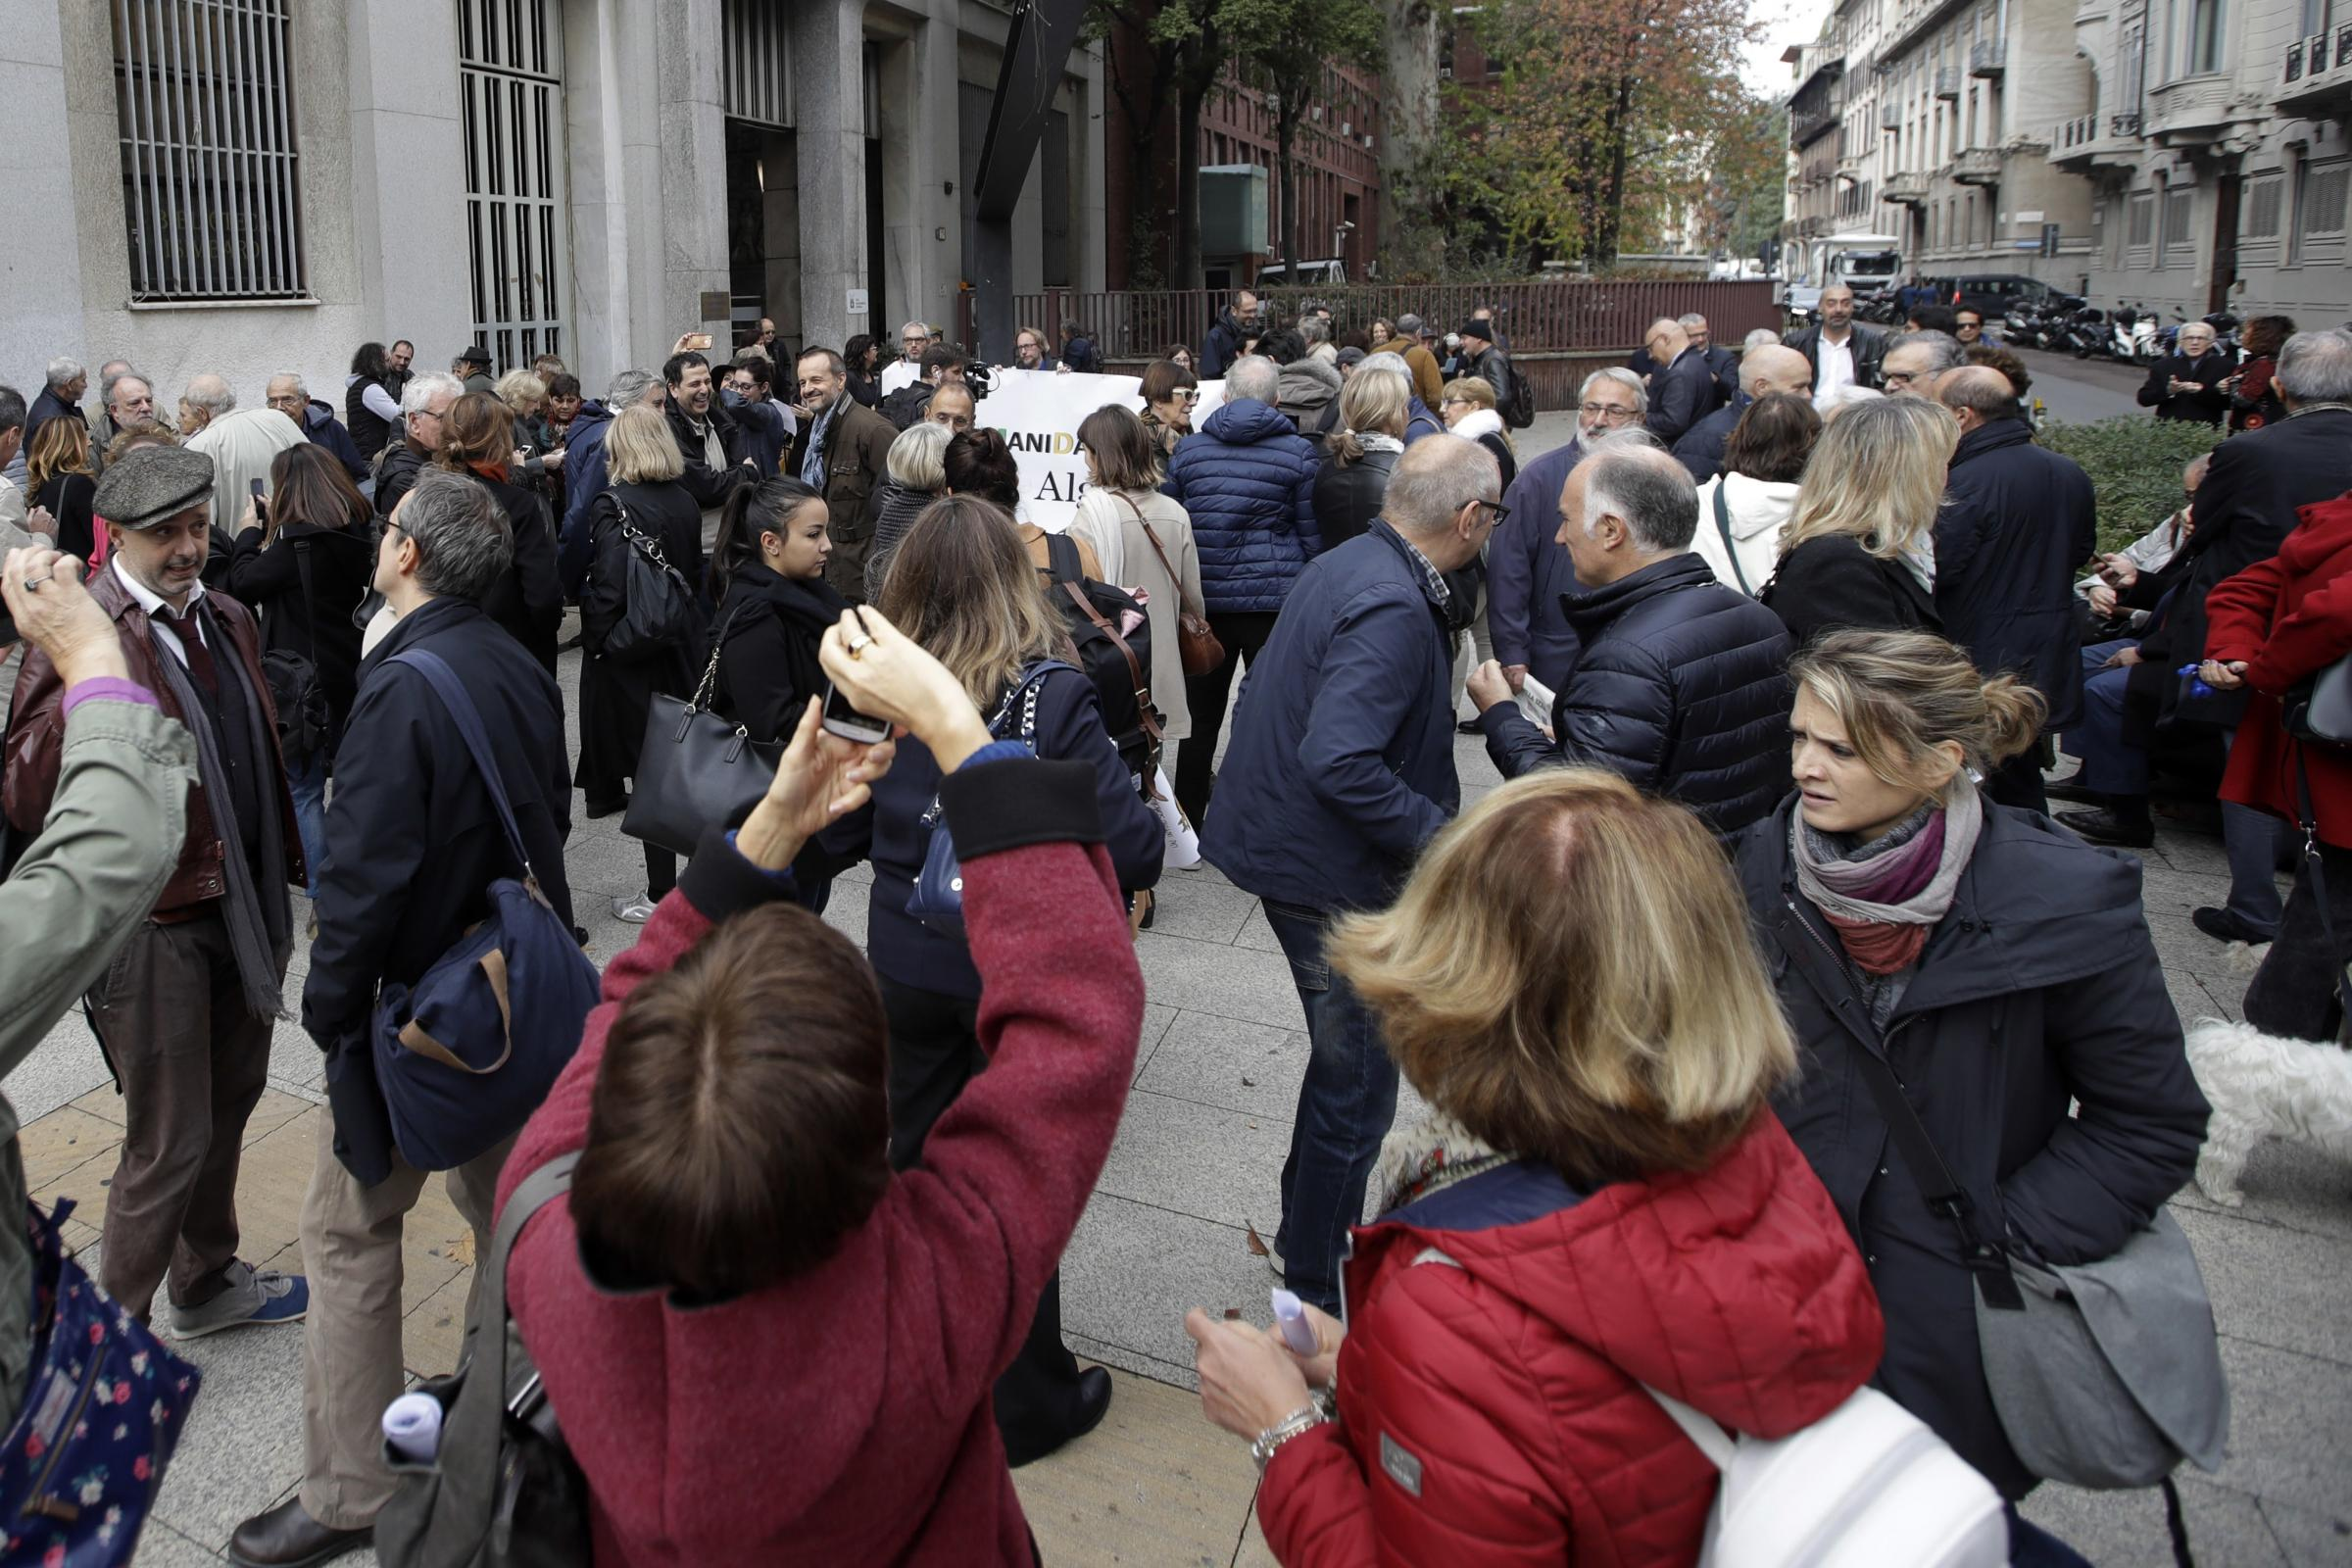 Italian journalists protest against insults from governing party